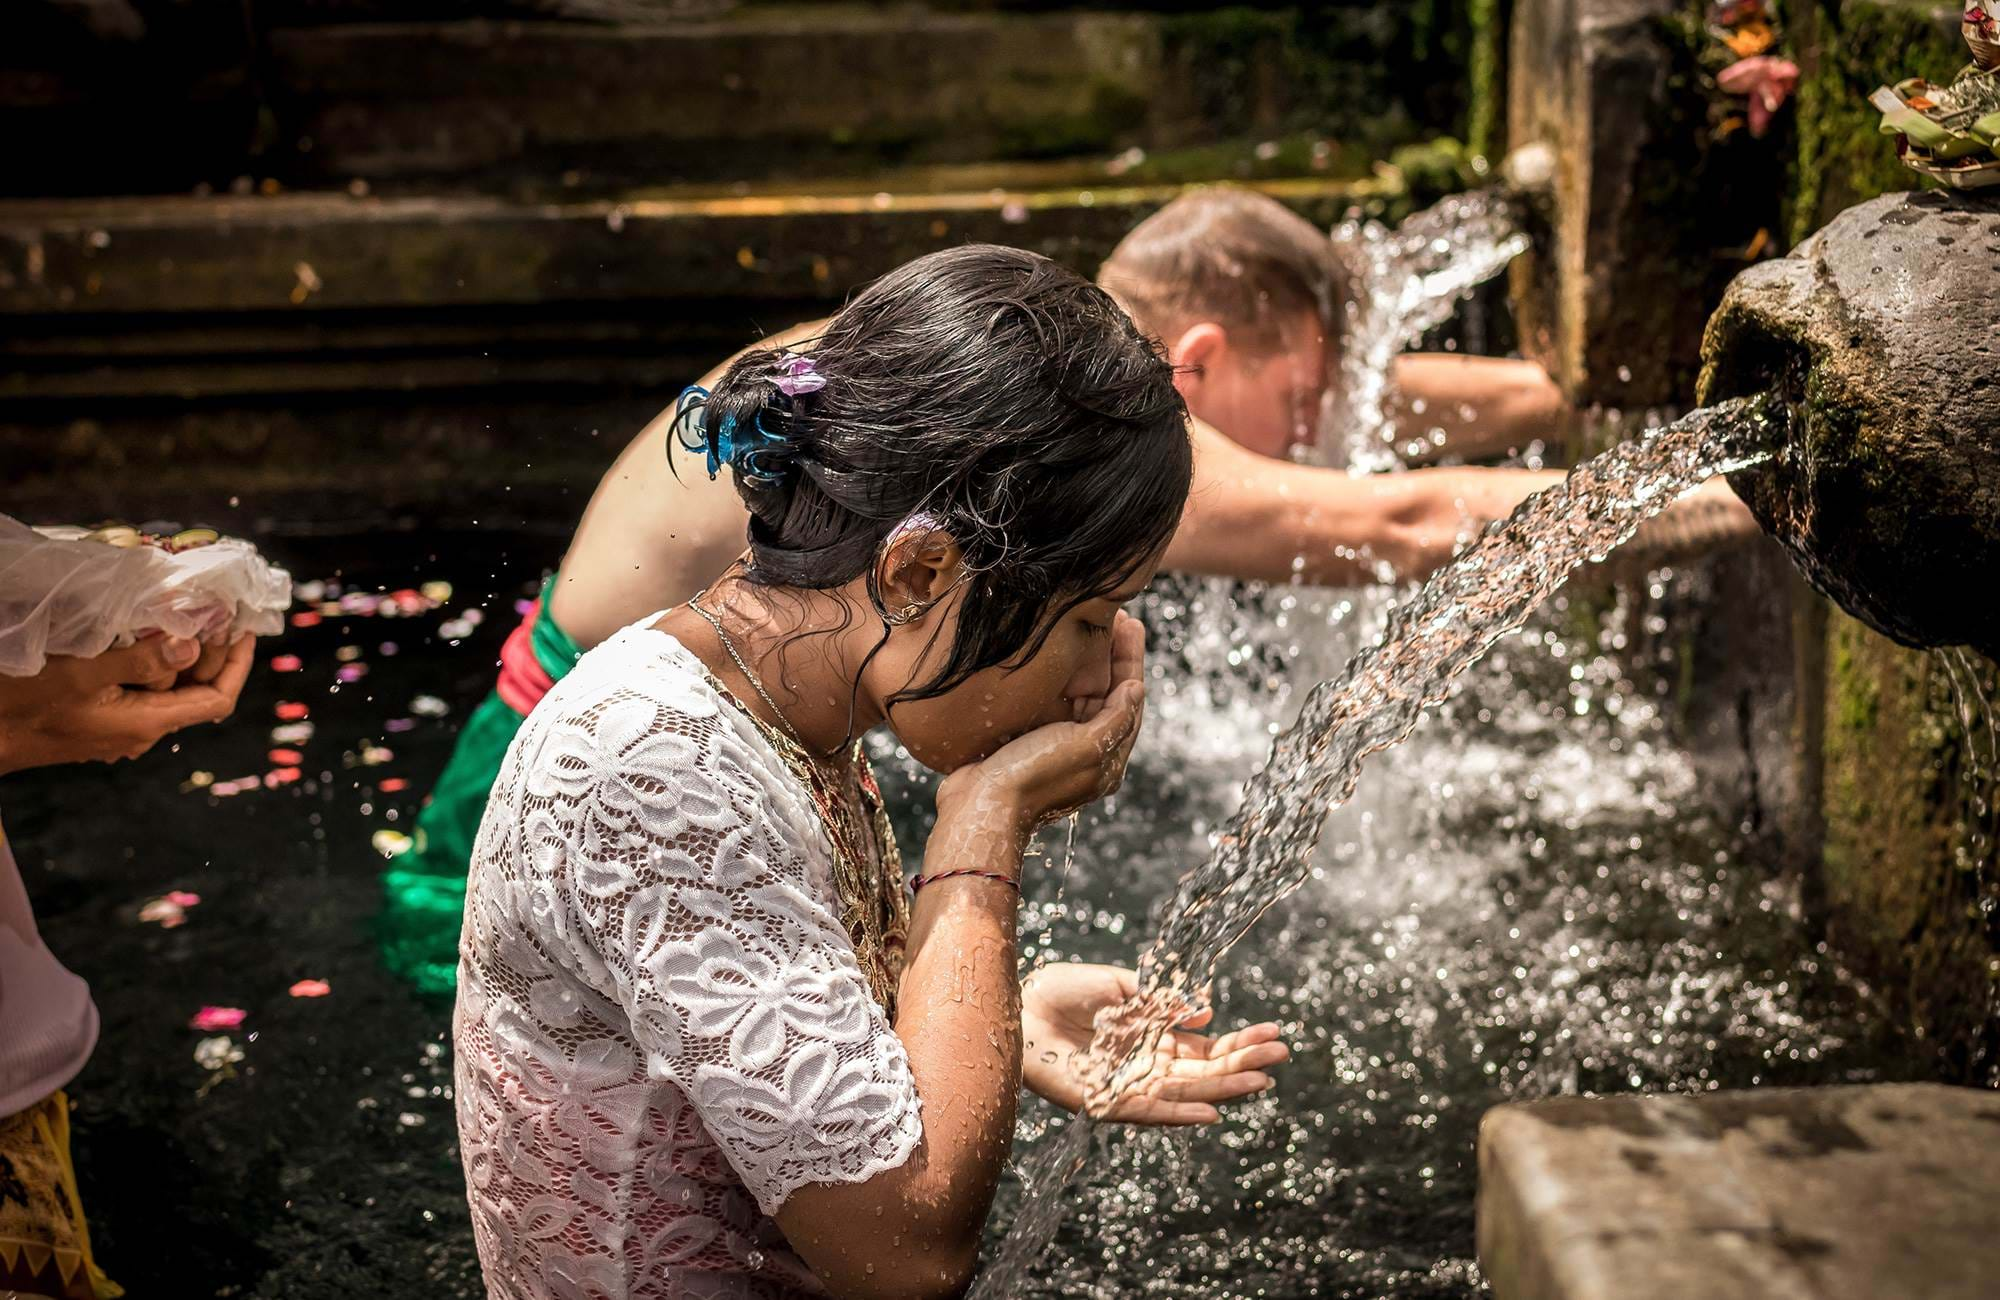 bali-indonesia-tirta-empul-temple-holy-spring-water